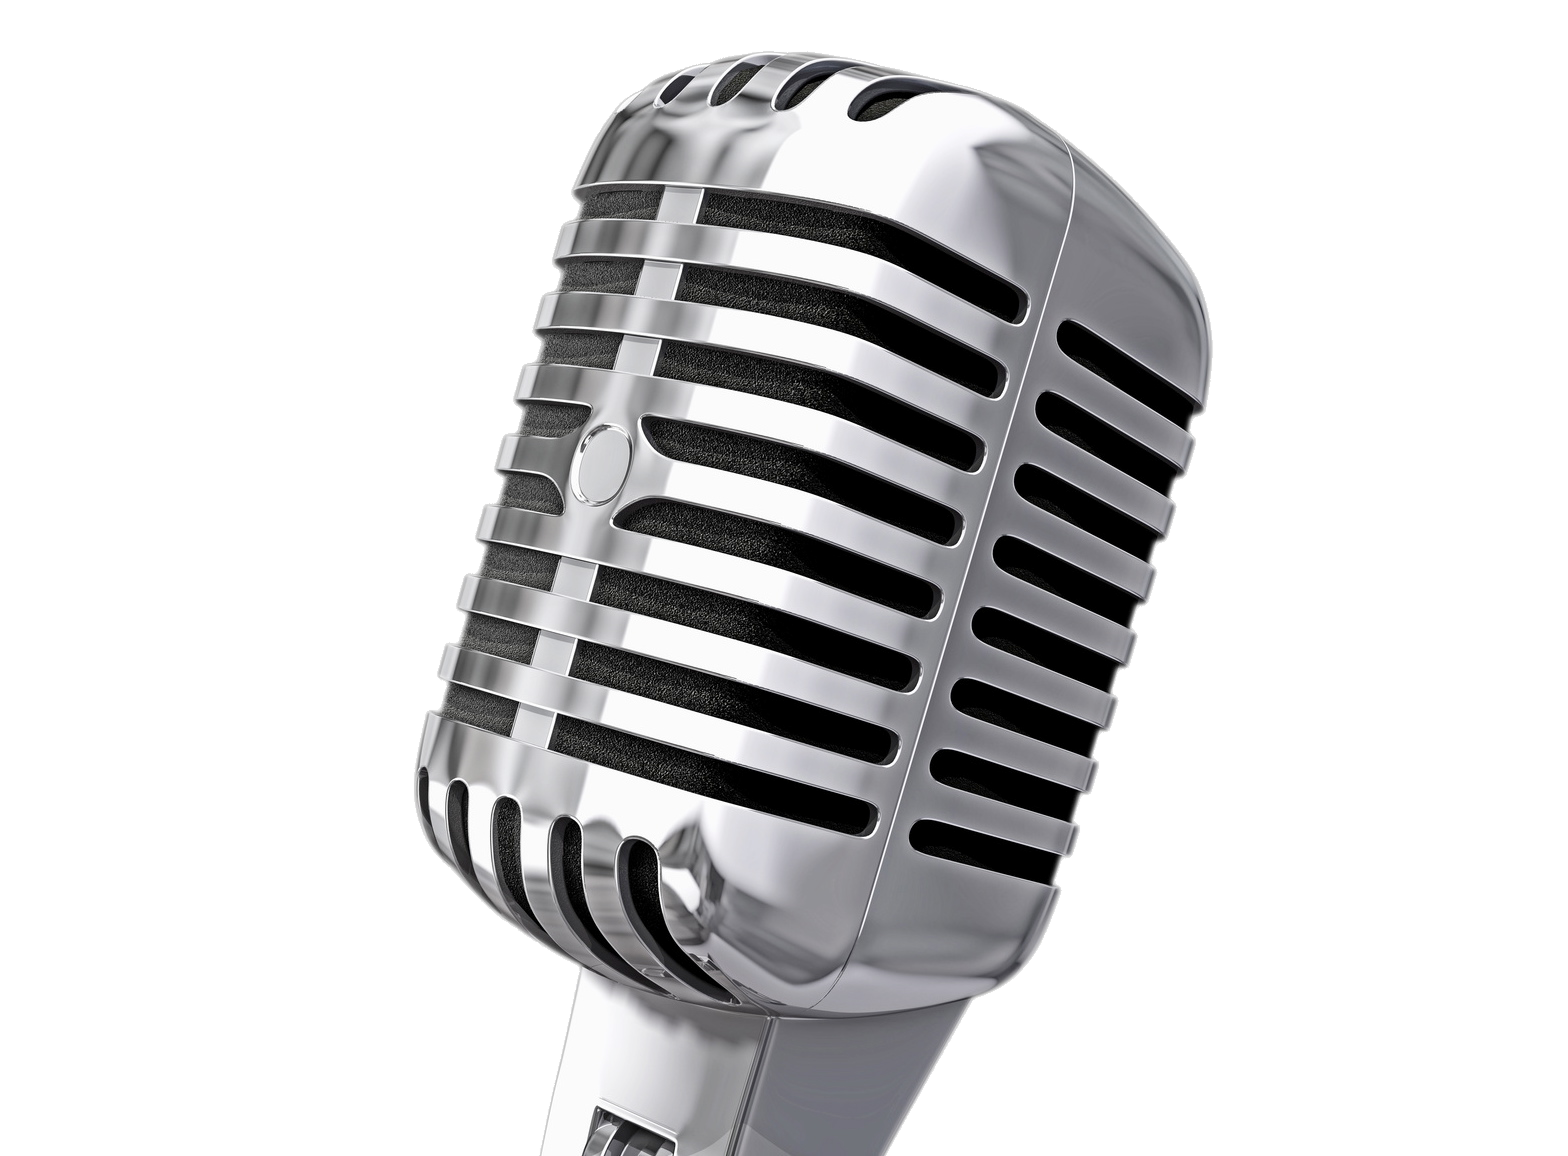 Get Microphone Png Pictures image #19981